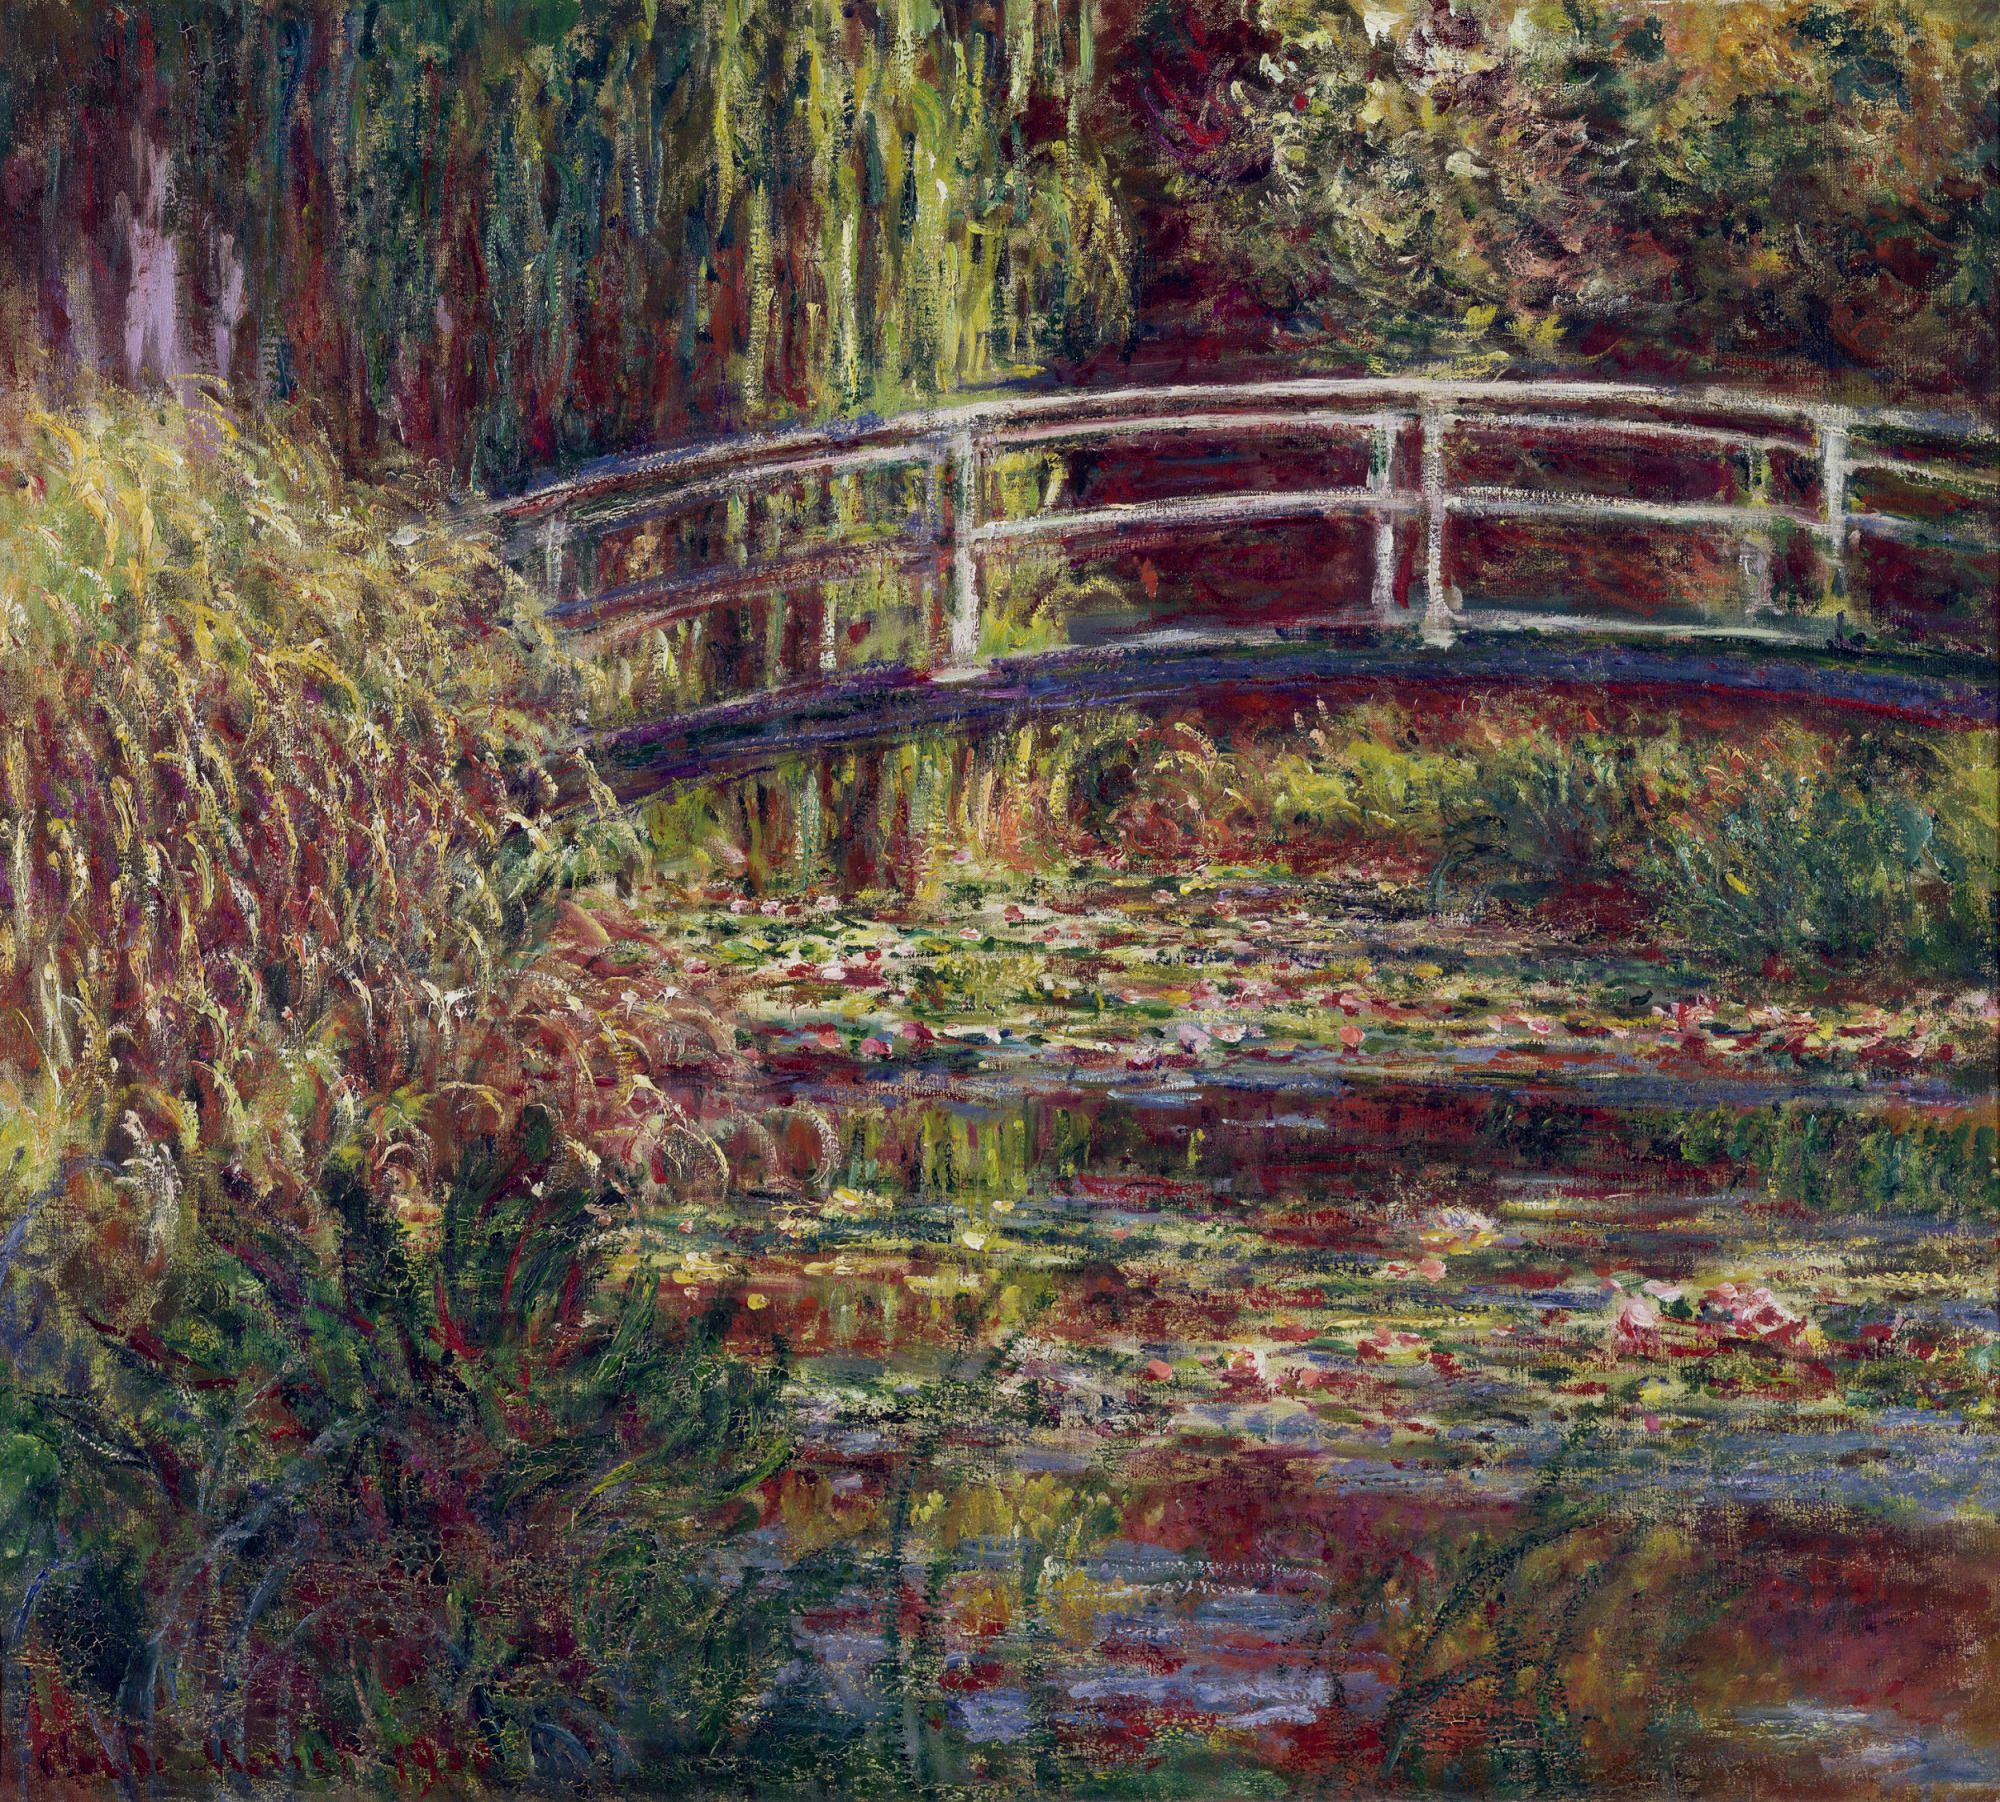 1000 images about Monet s Japanese Bridge & Water Lilies on Pinterest